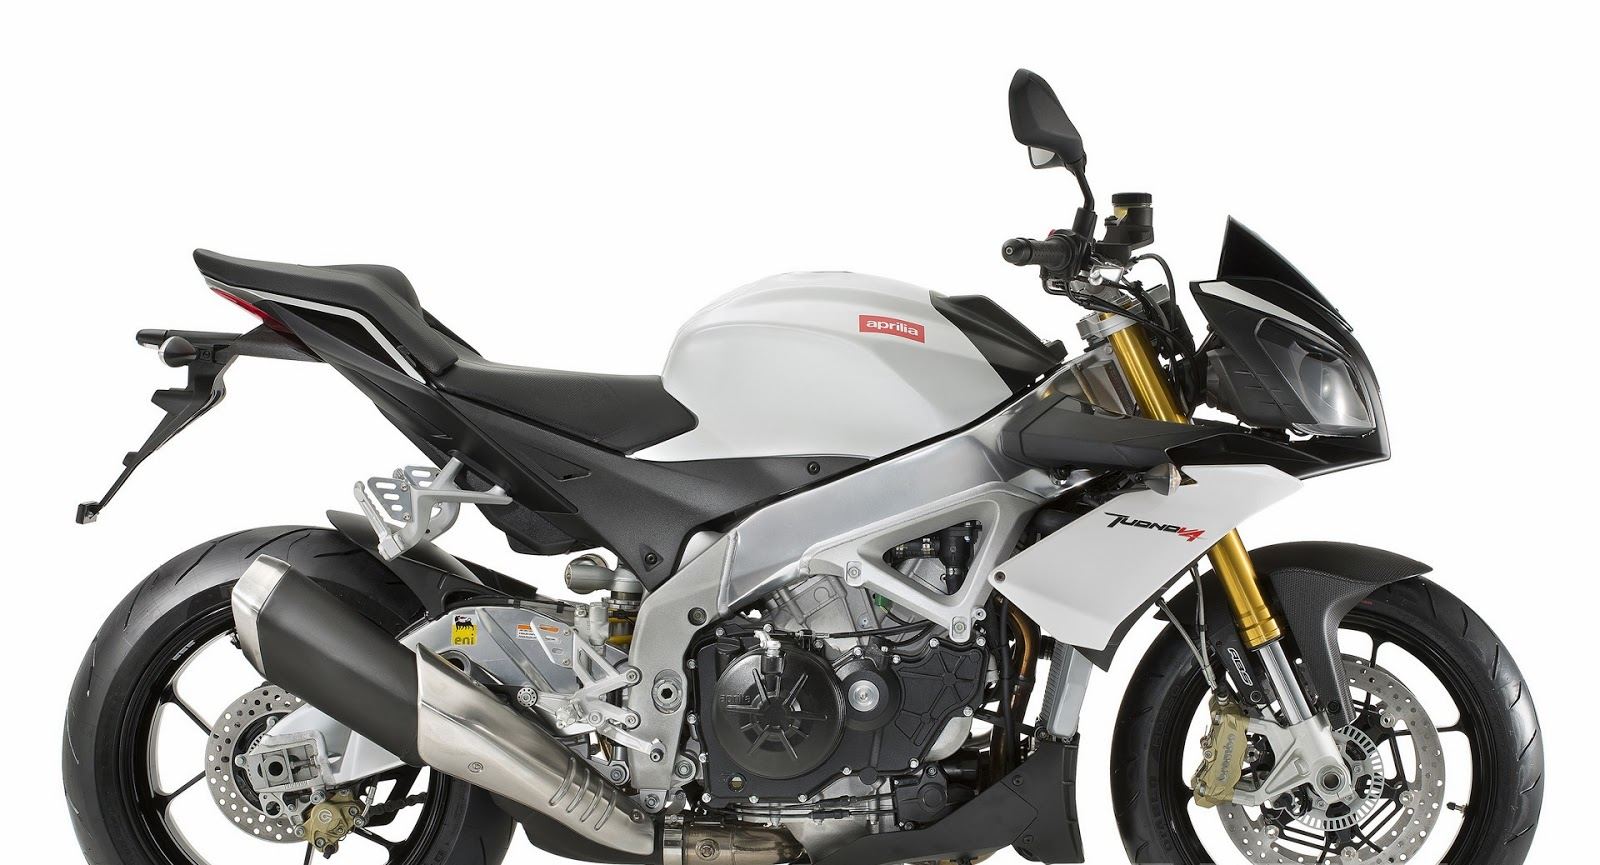 Aprilia Tuono V4 R ABS Used Motorcycle